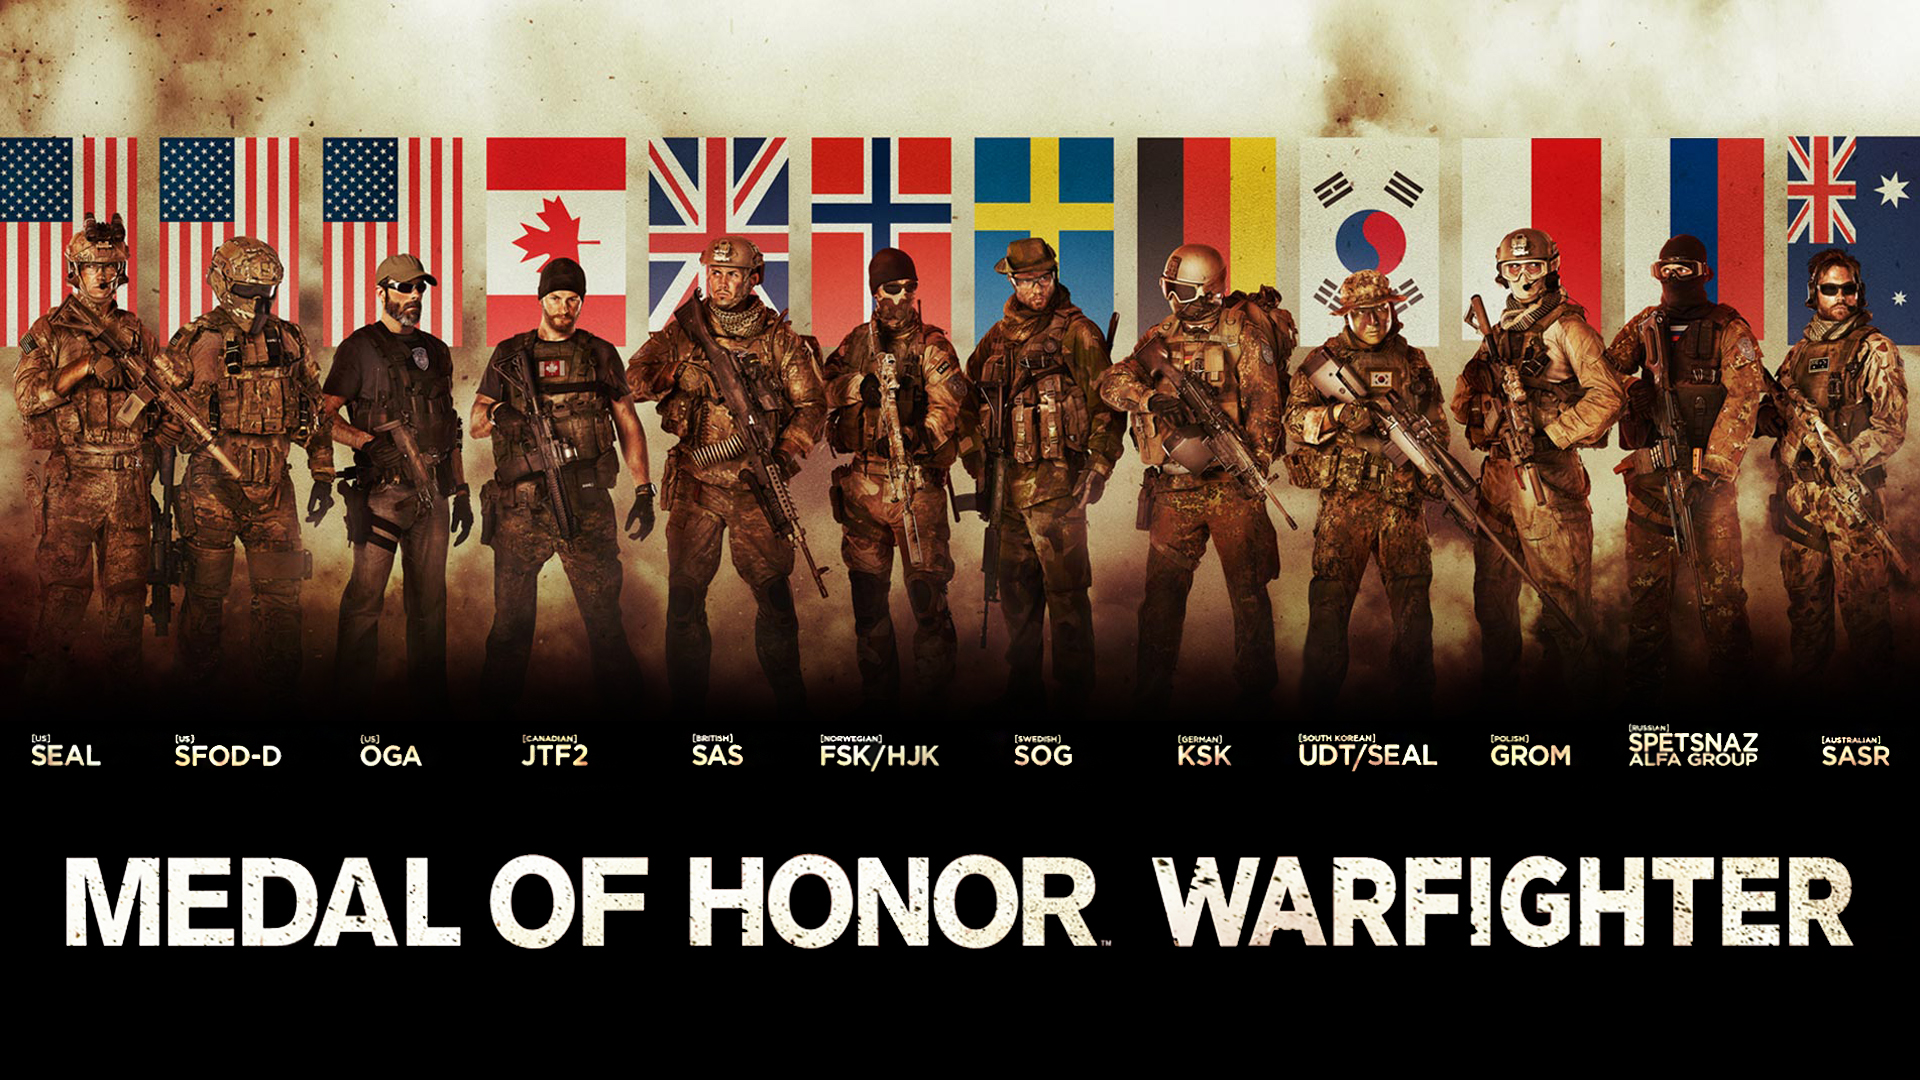 Medal of Honor Warfighter Tier 1 Special Forces